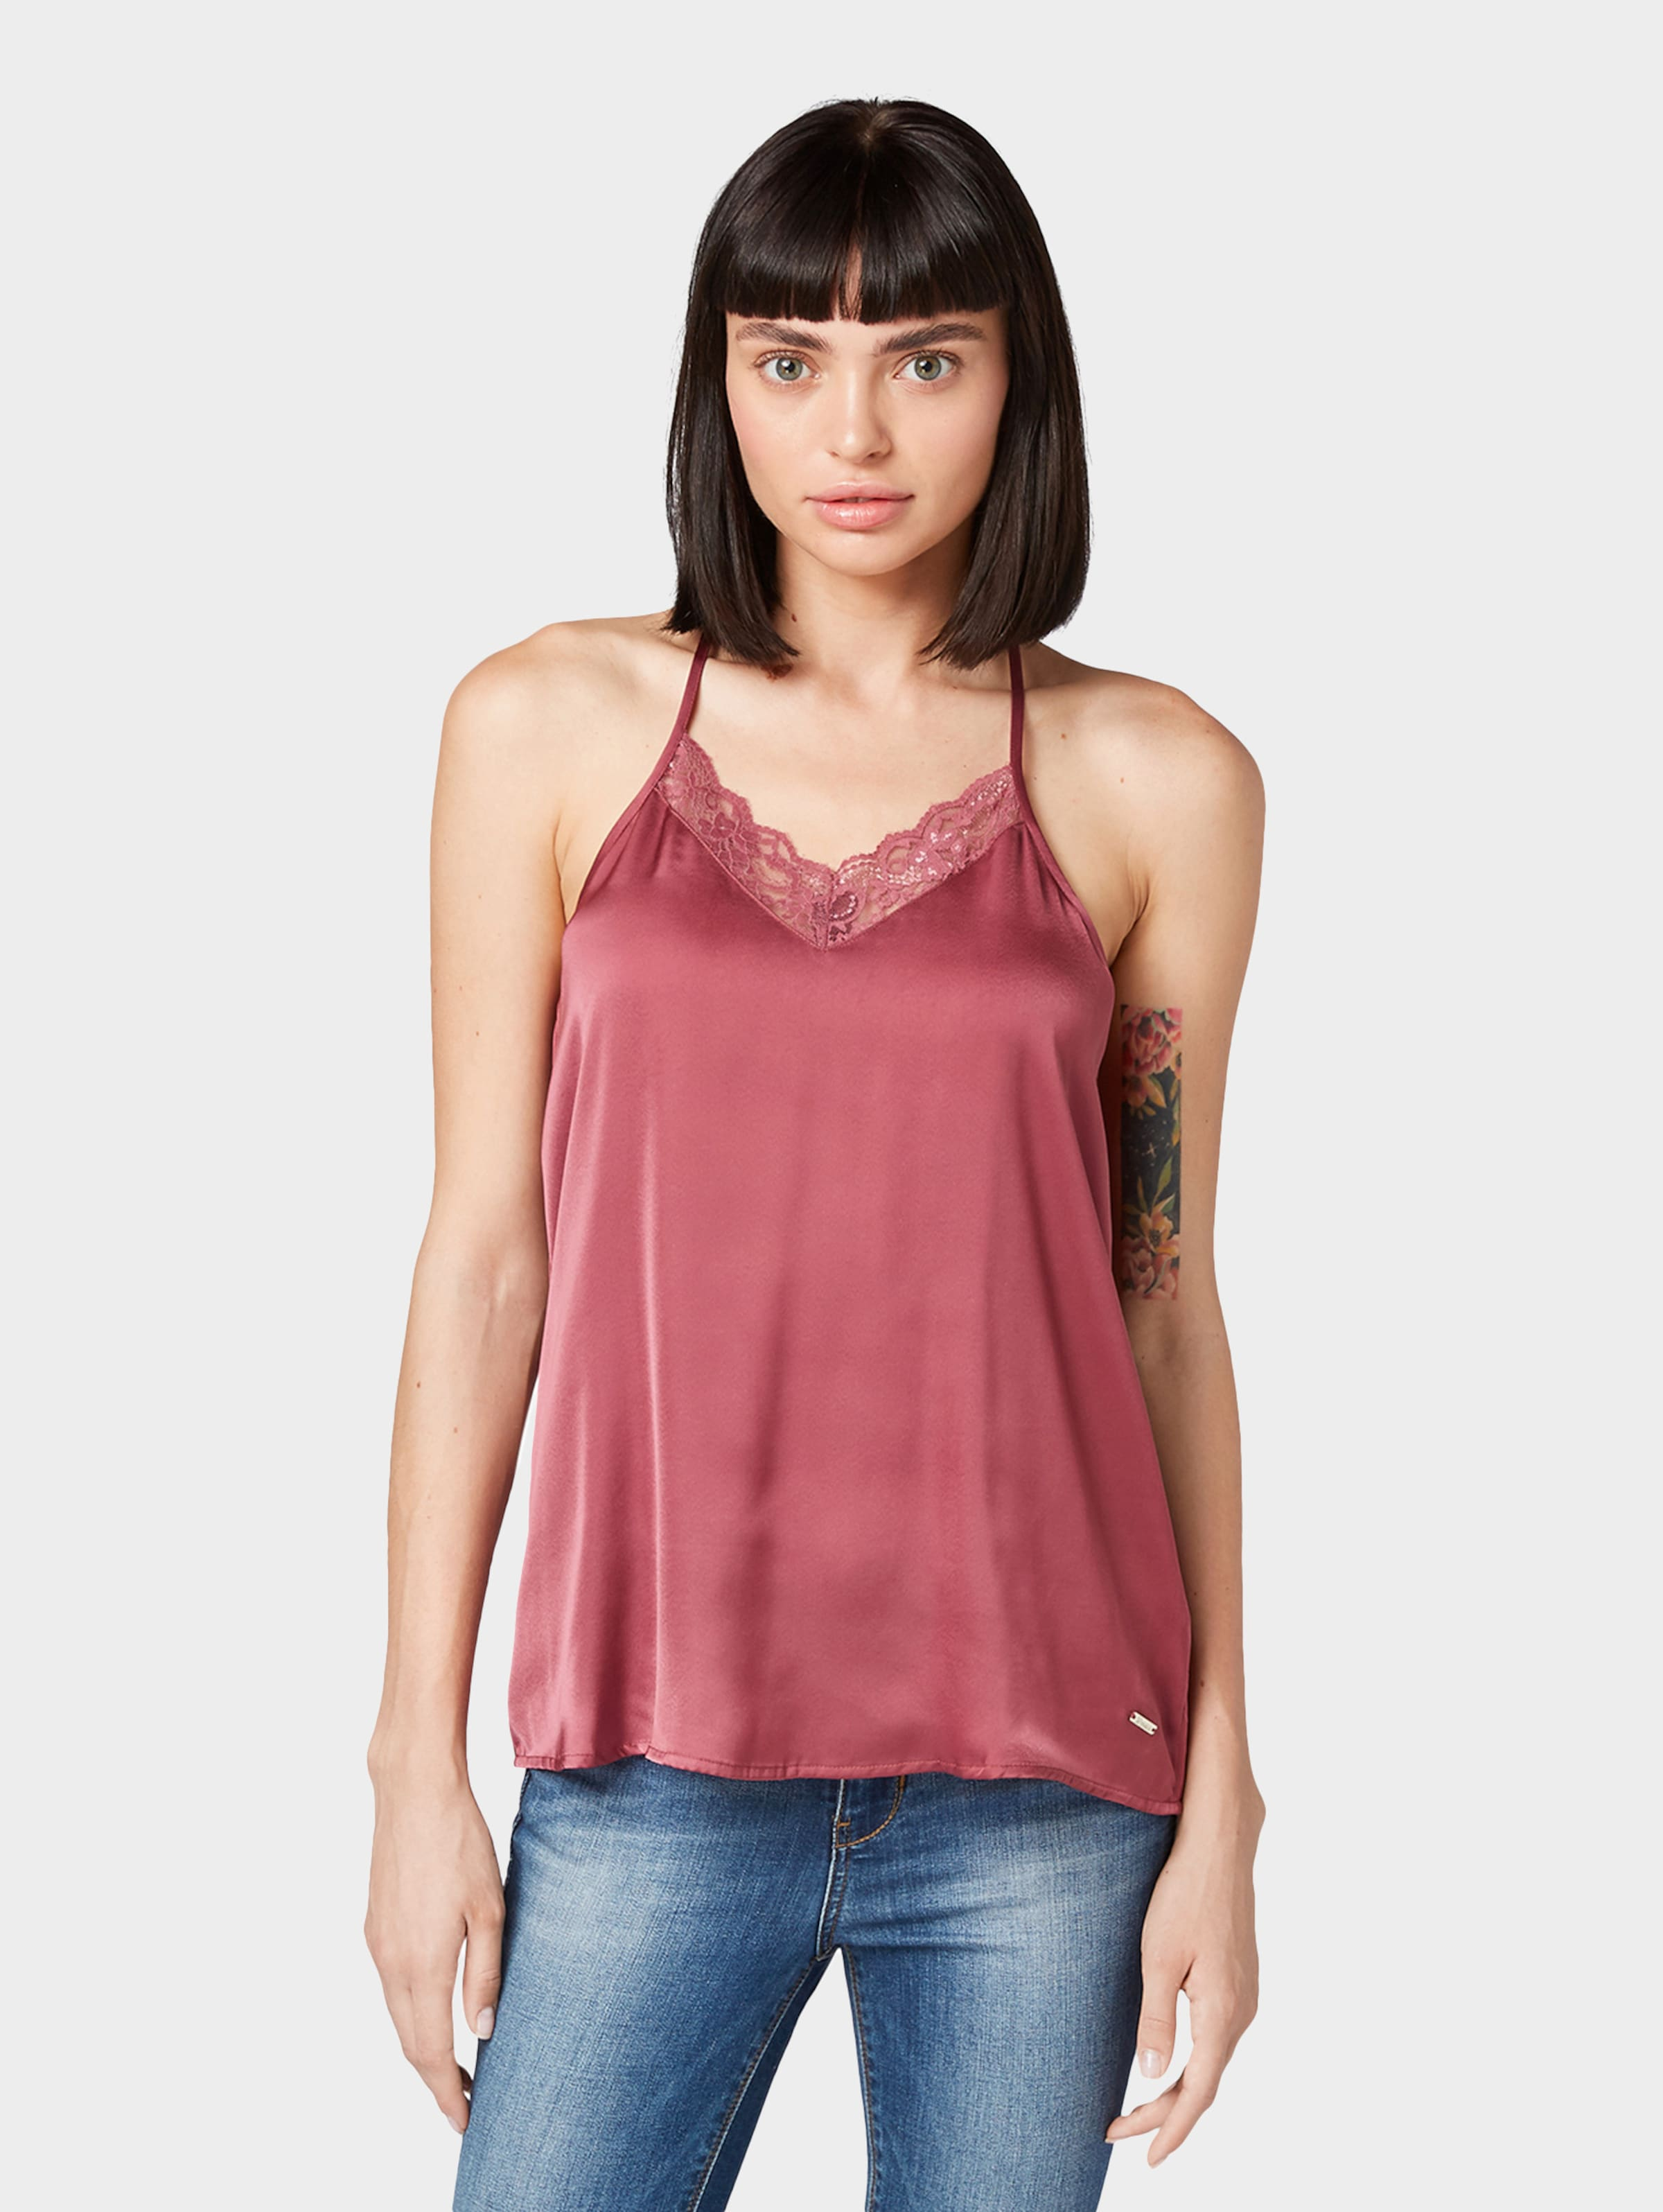 Tailor Denim Top In Tom Bordeaux IW29EDYeH